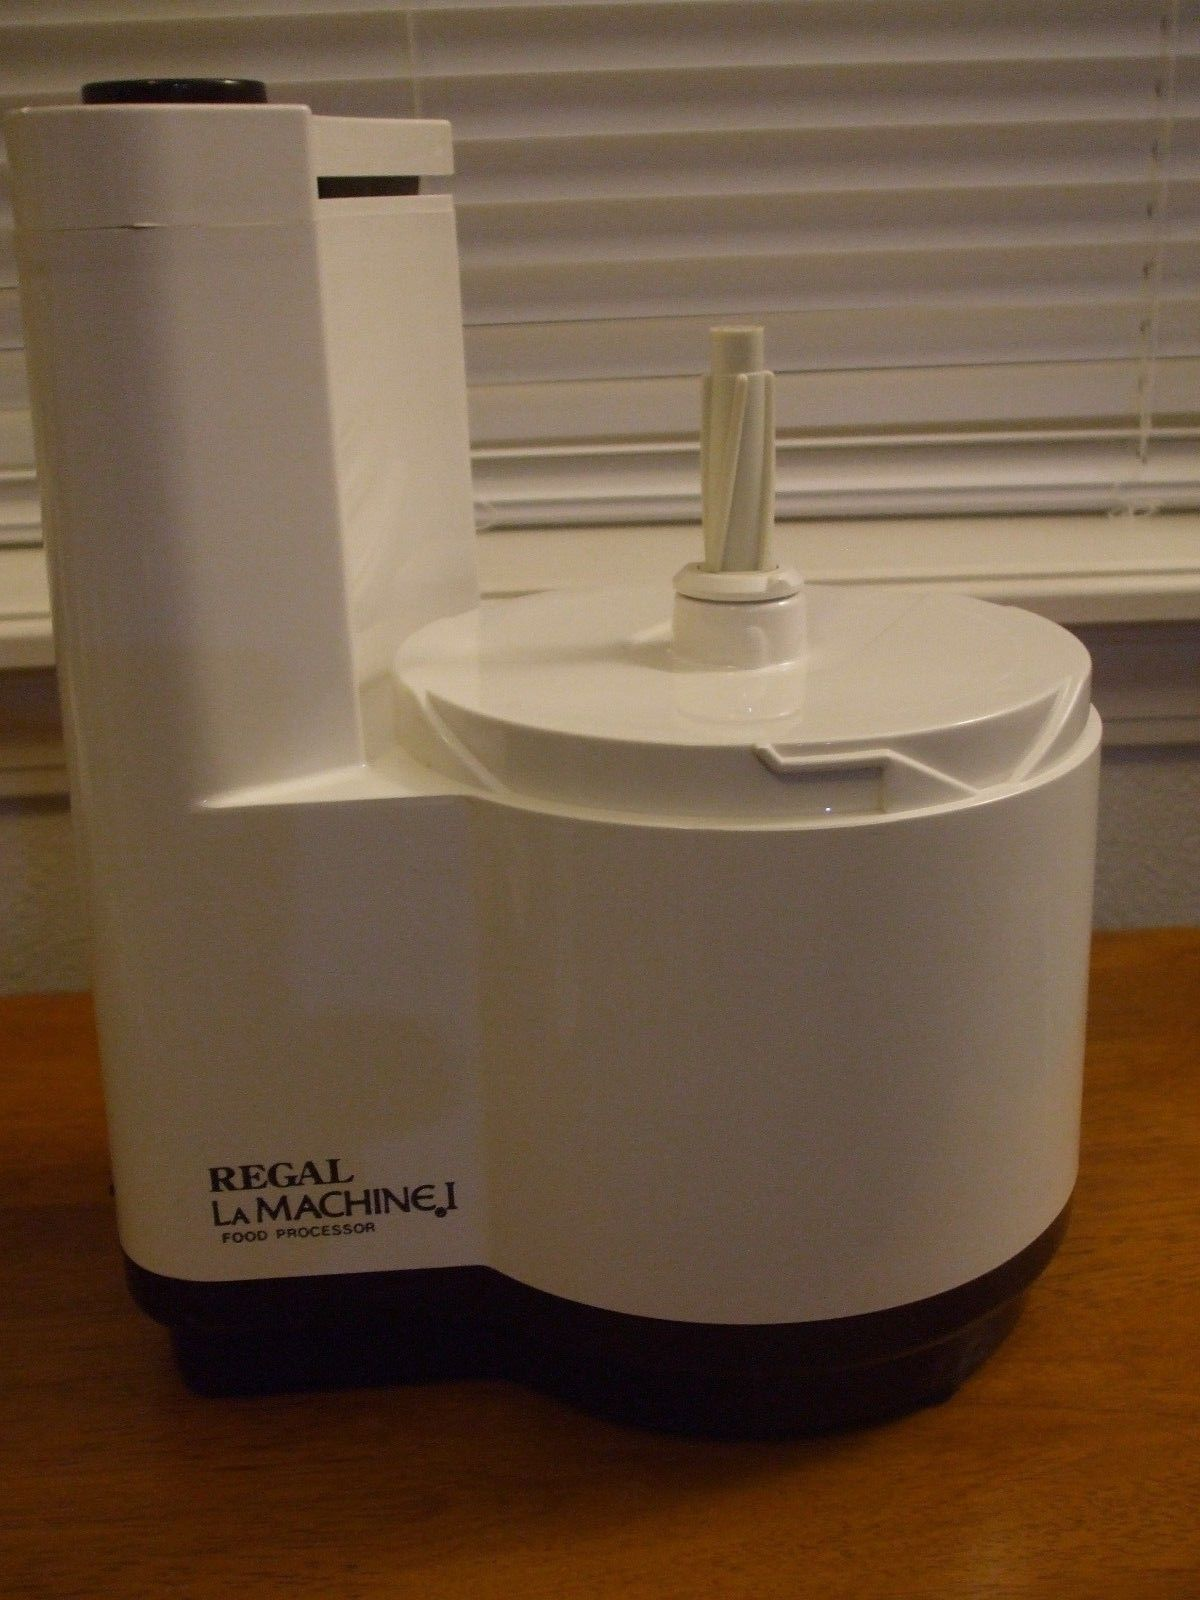 regal la machine 1 food processor parts